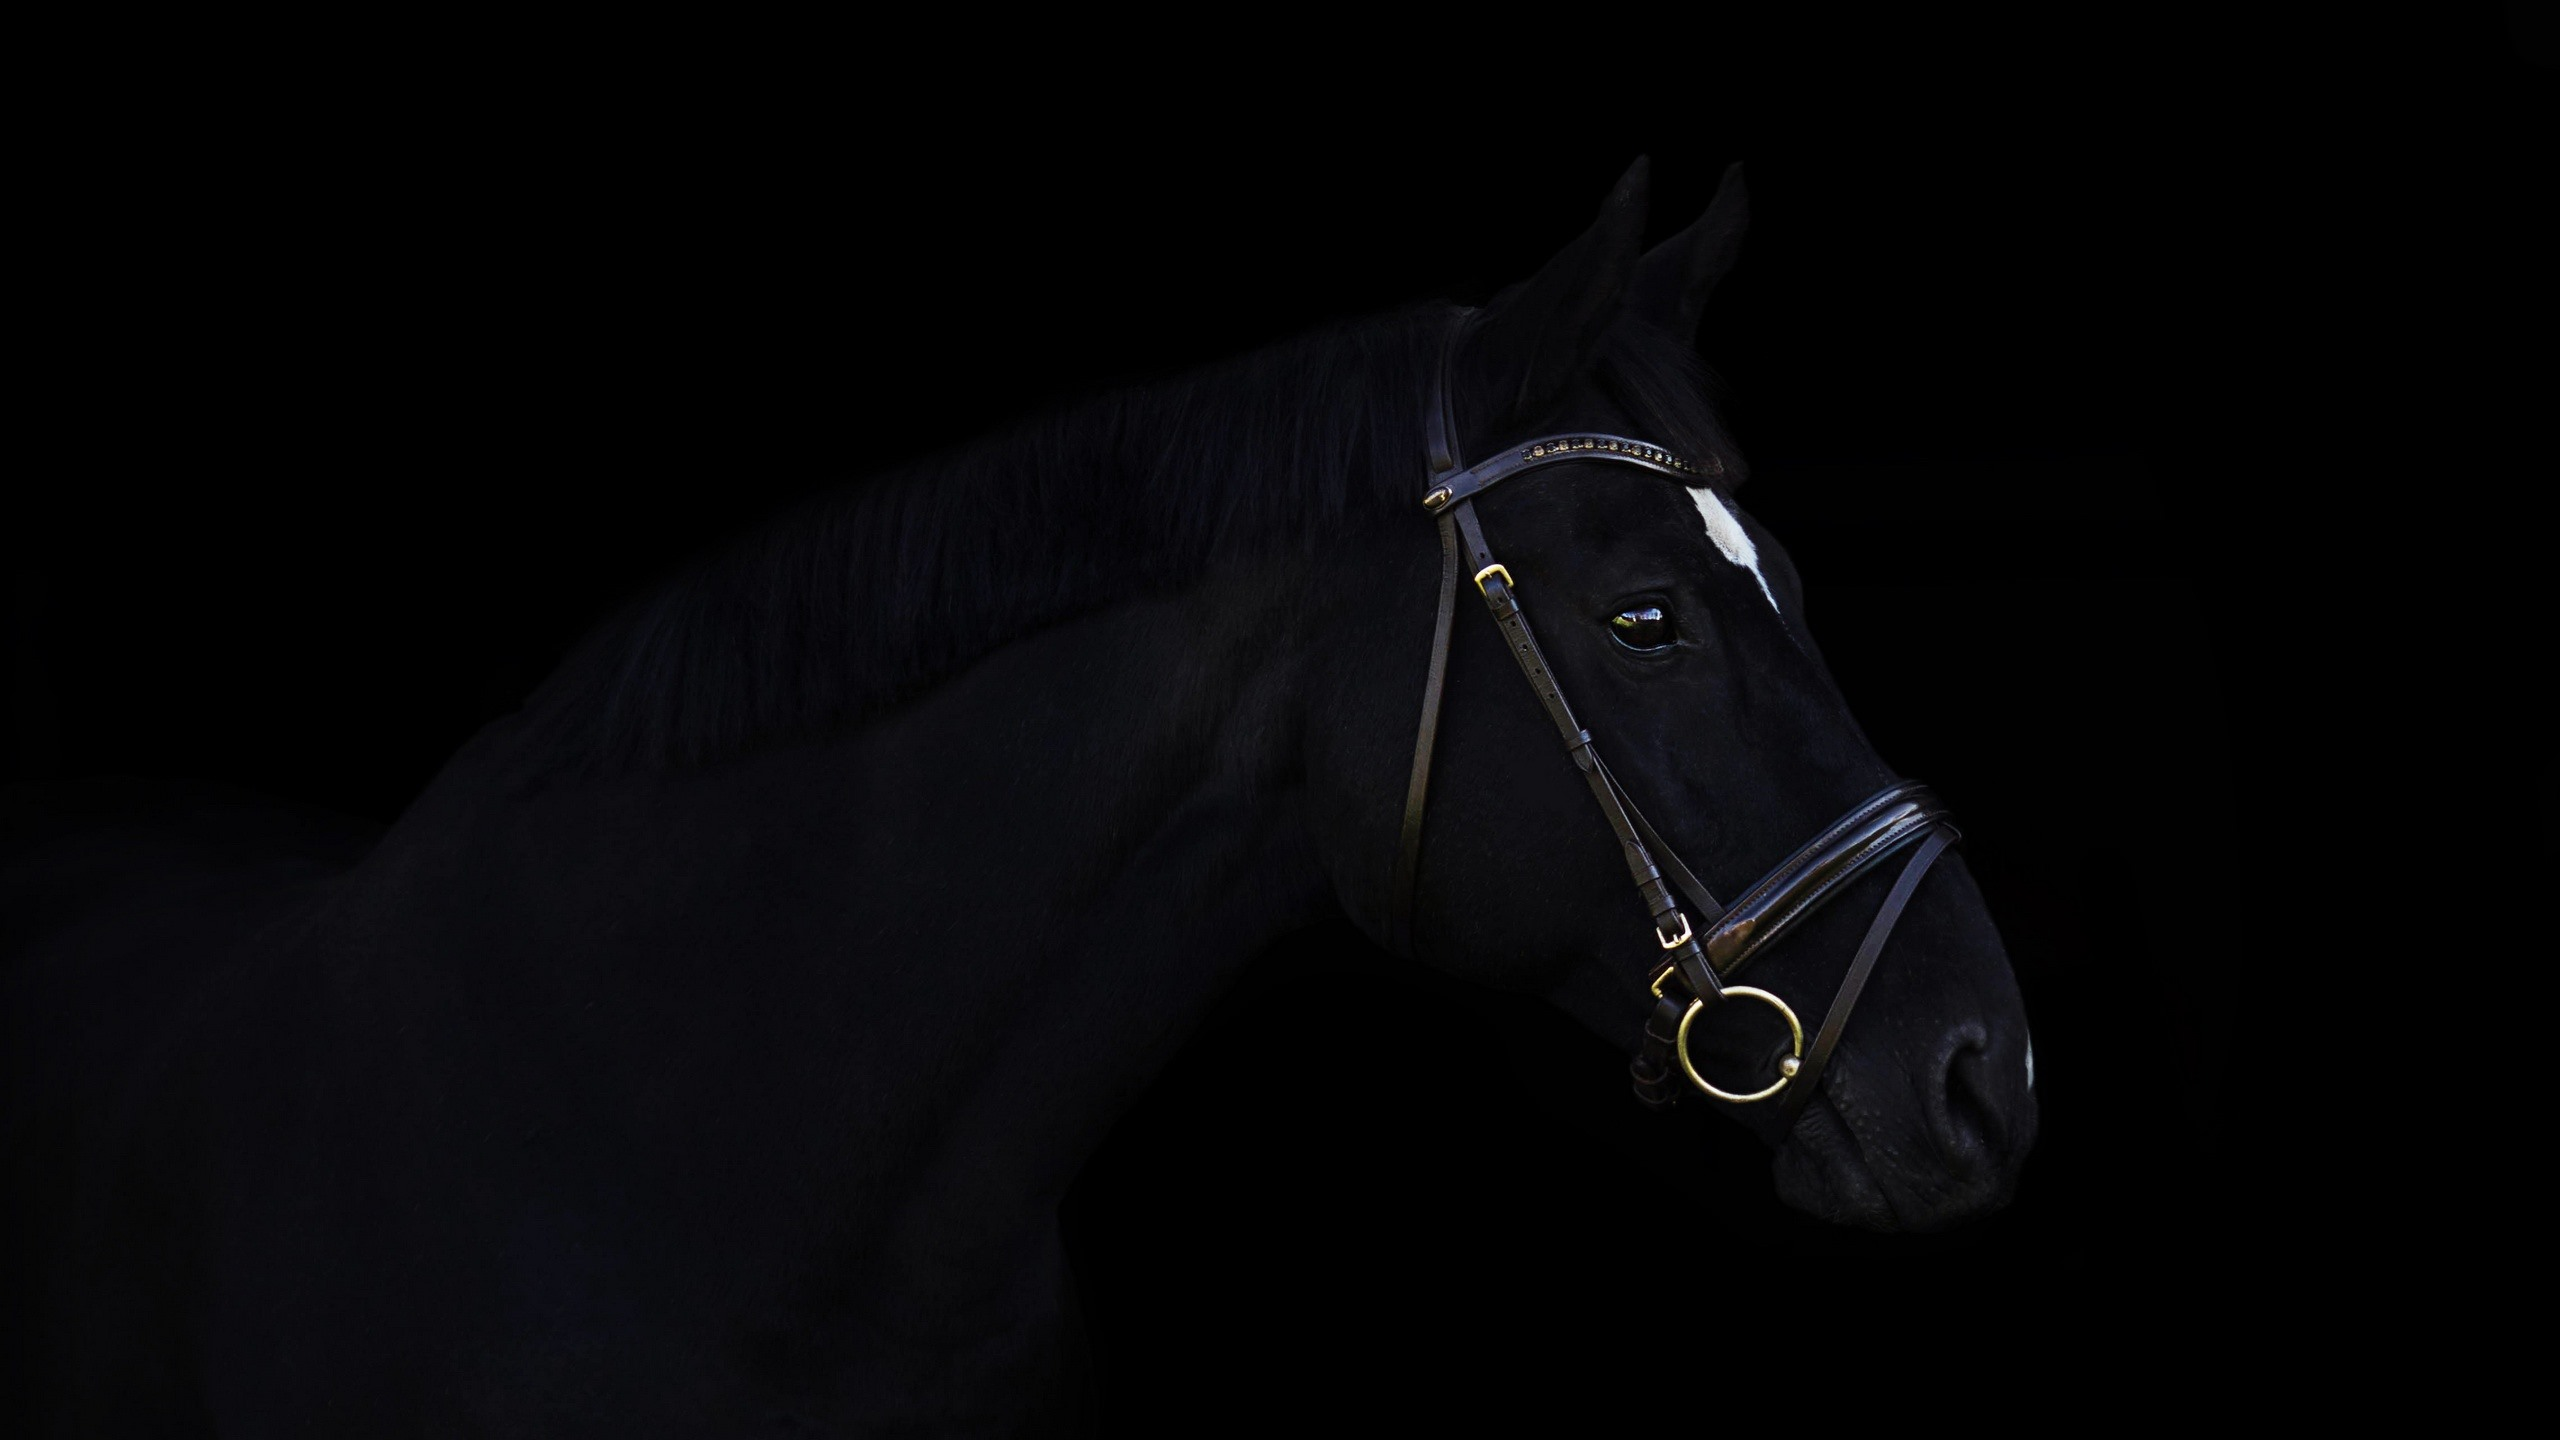 Wallpaper Black Horse And Black Background 2560x1440 Qhd